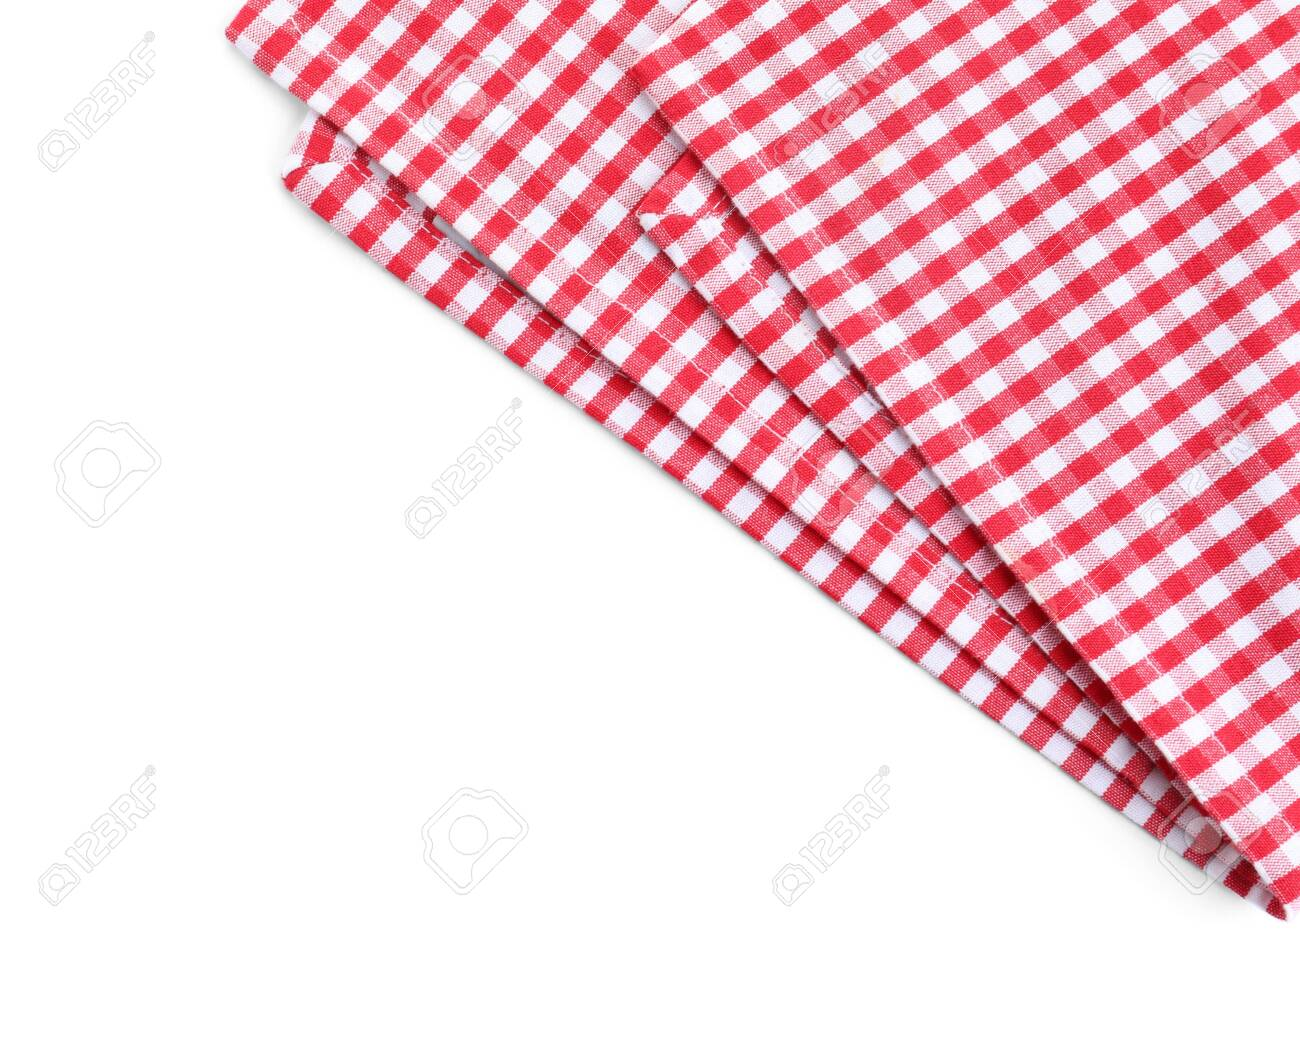 Classic red checkered tablecloth isolated on white, top view - 126753070